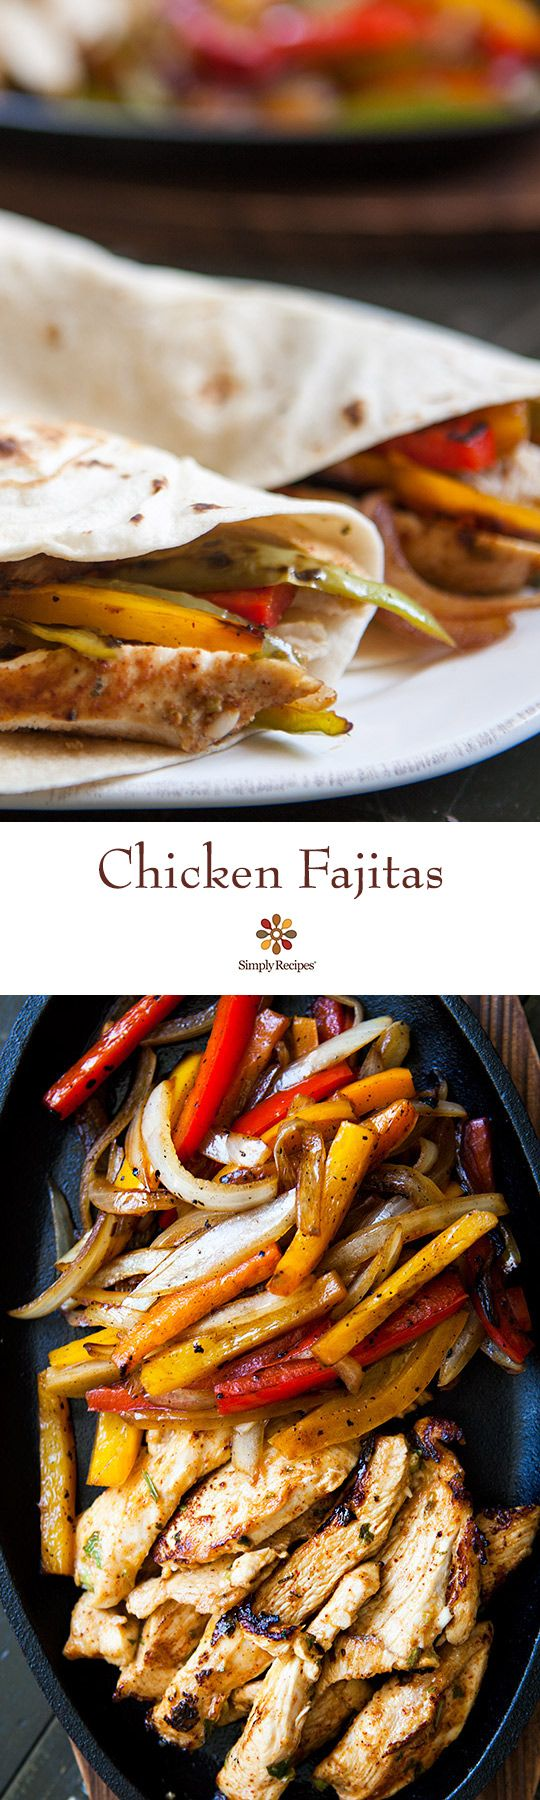 The BEST chicken fajitas! Marinated chicken breasts seared quickly and served with seared onions and bell peppers, and flour tortillas. On SimplyRecipes.com: